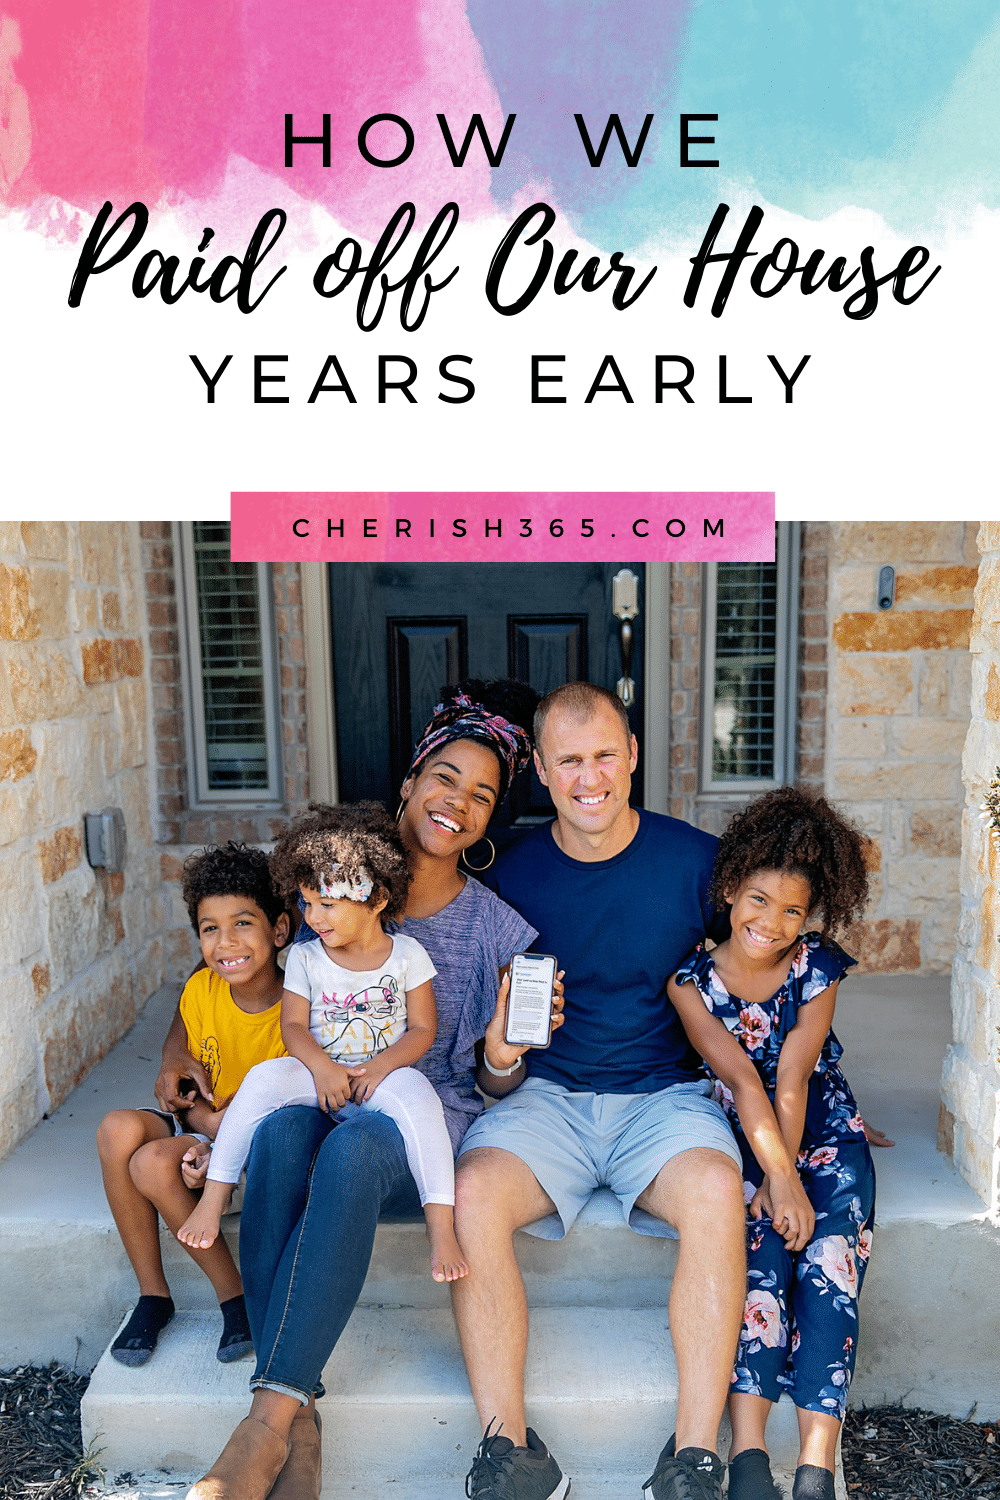 We Just Paid Off Our House! This is How We Reached Our Big Goal